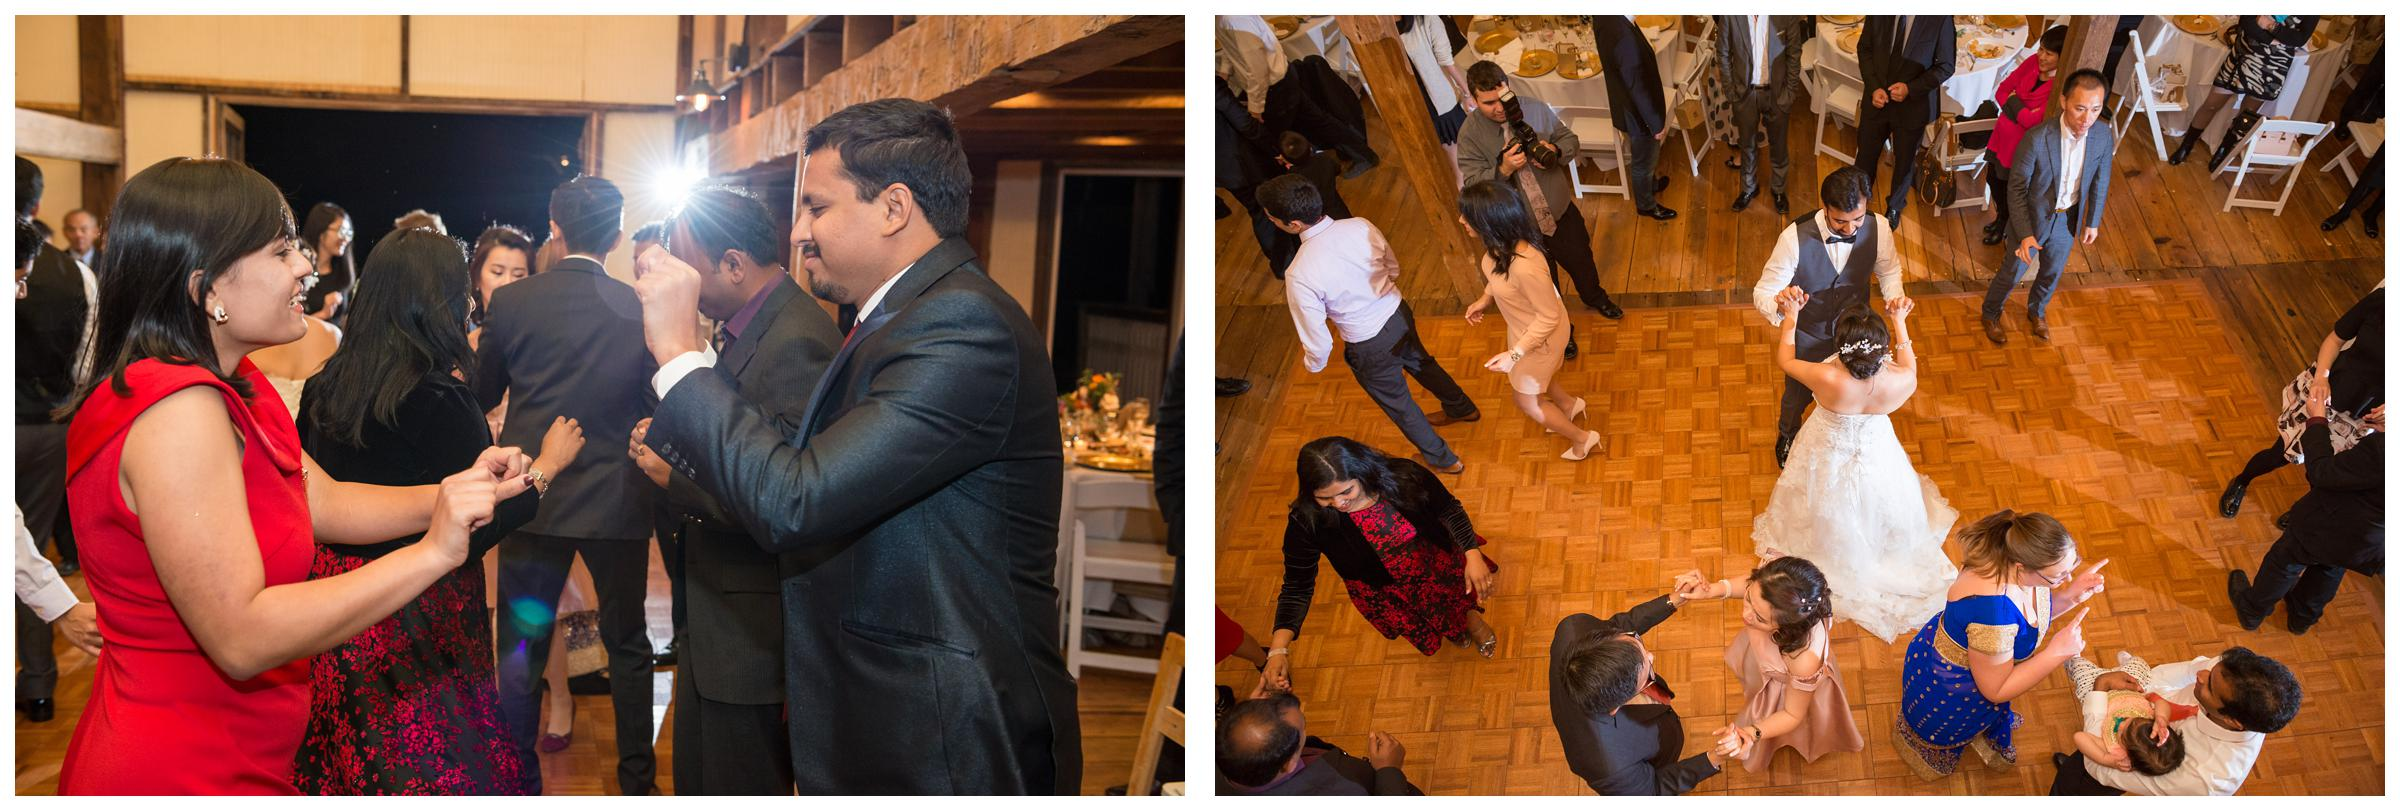 Bride and groom dancing during their rustic barn wedding reception at Stoneleigh Golf Club.